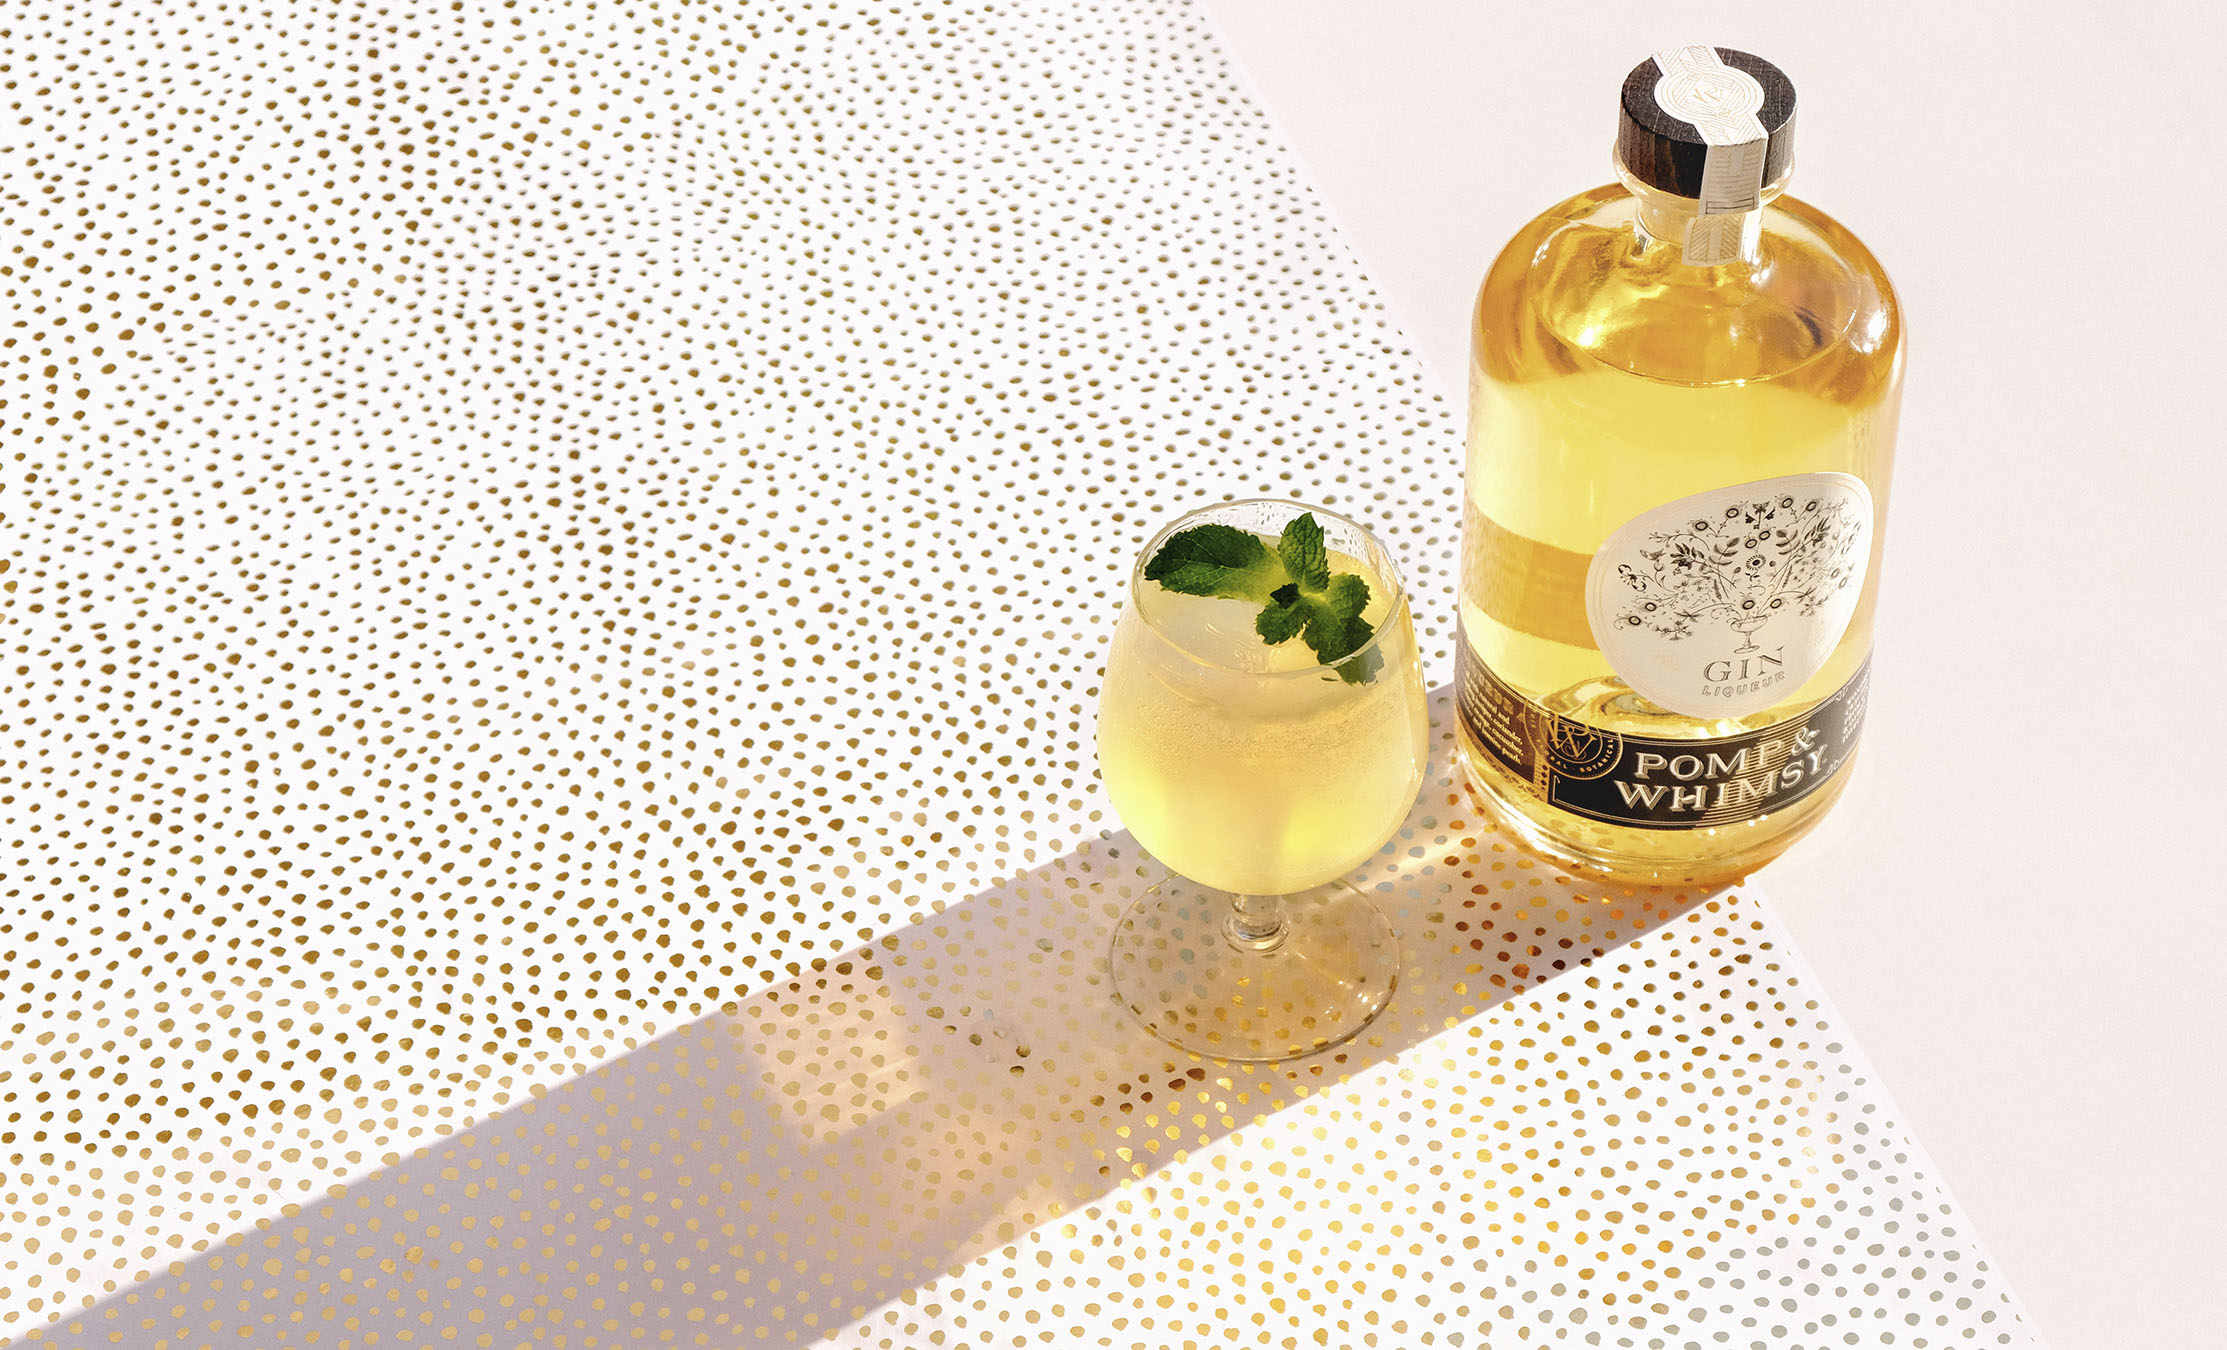 A FINE FILLY   1½  oz  Pomp & Whimsy ¾  oz  ginger syrup ½  oz  lime club soda   Add all ingredients to shaker and shake for 10 seconds. Strain into glass and add club soda.    Garnish with a handful of mint.